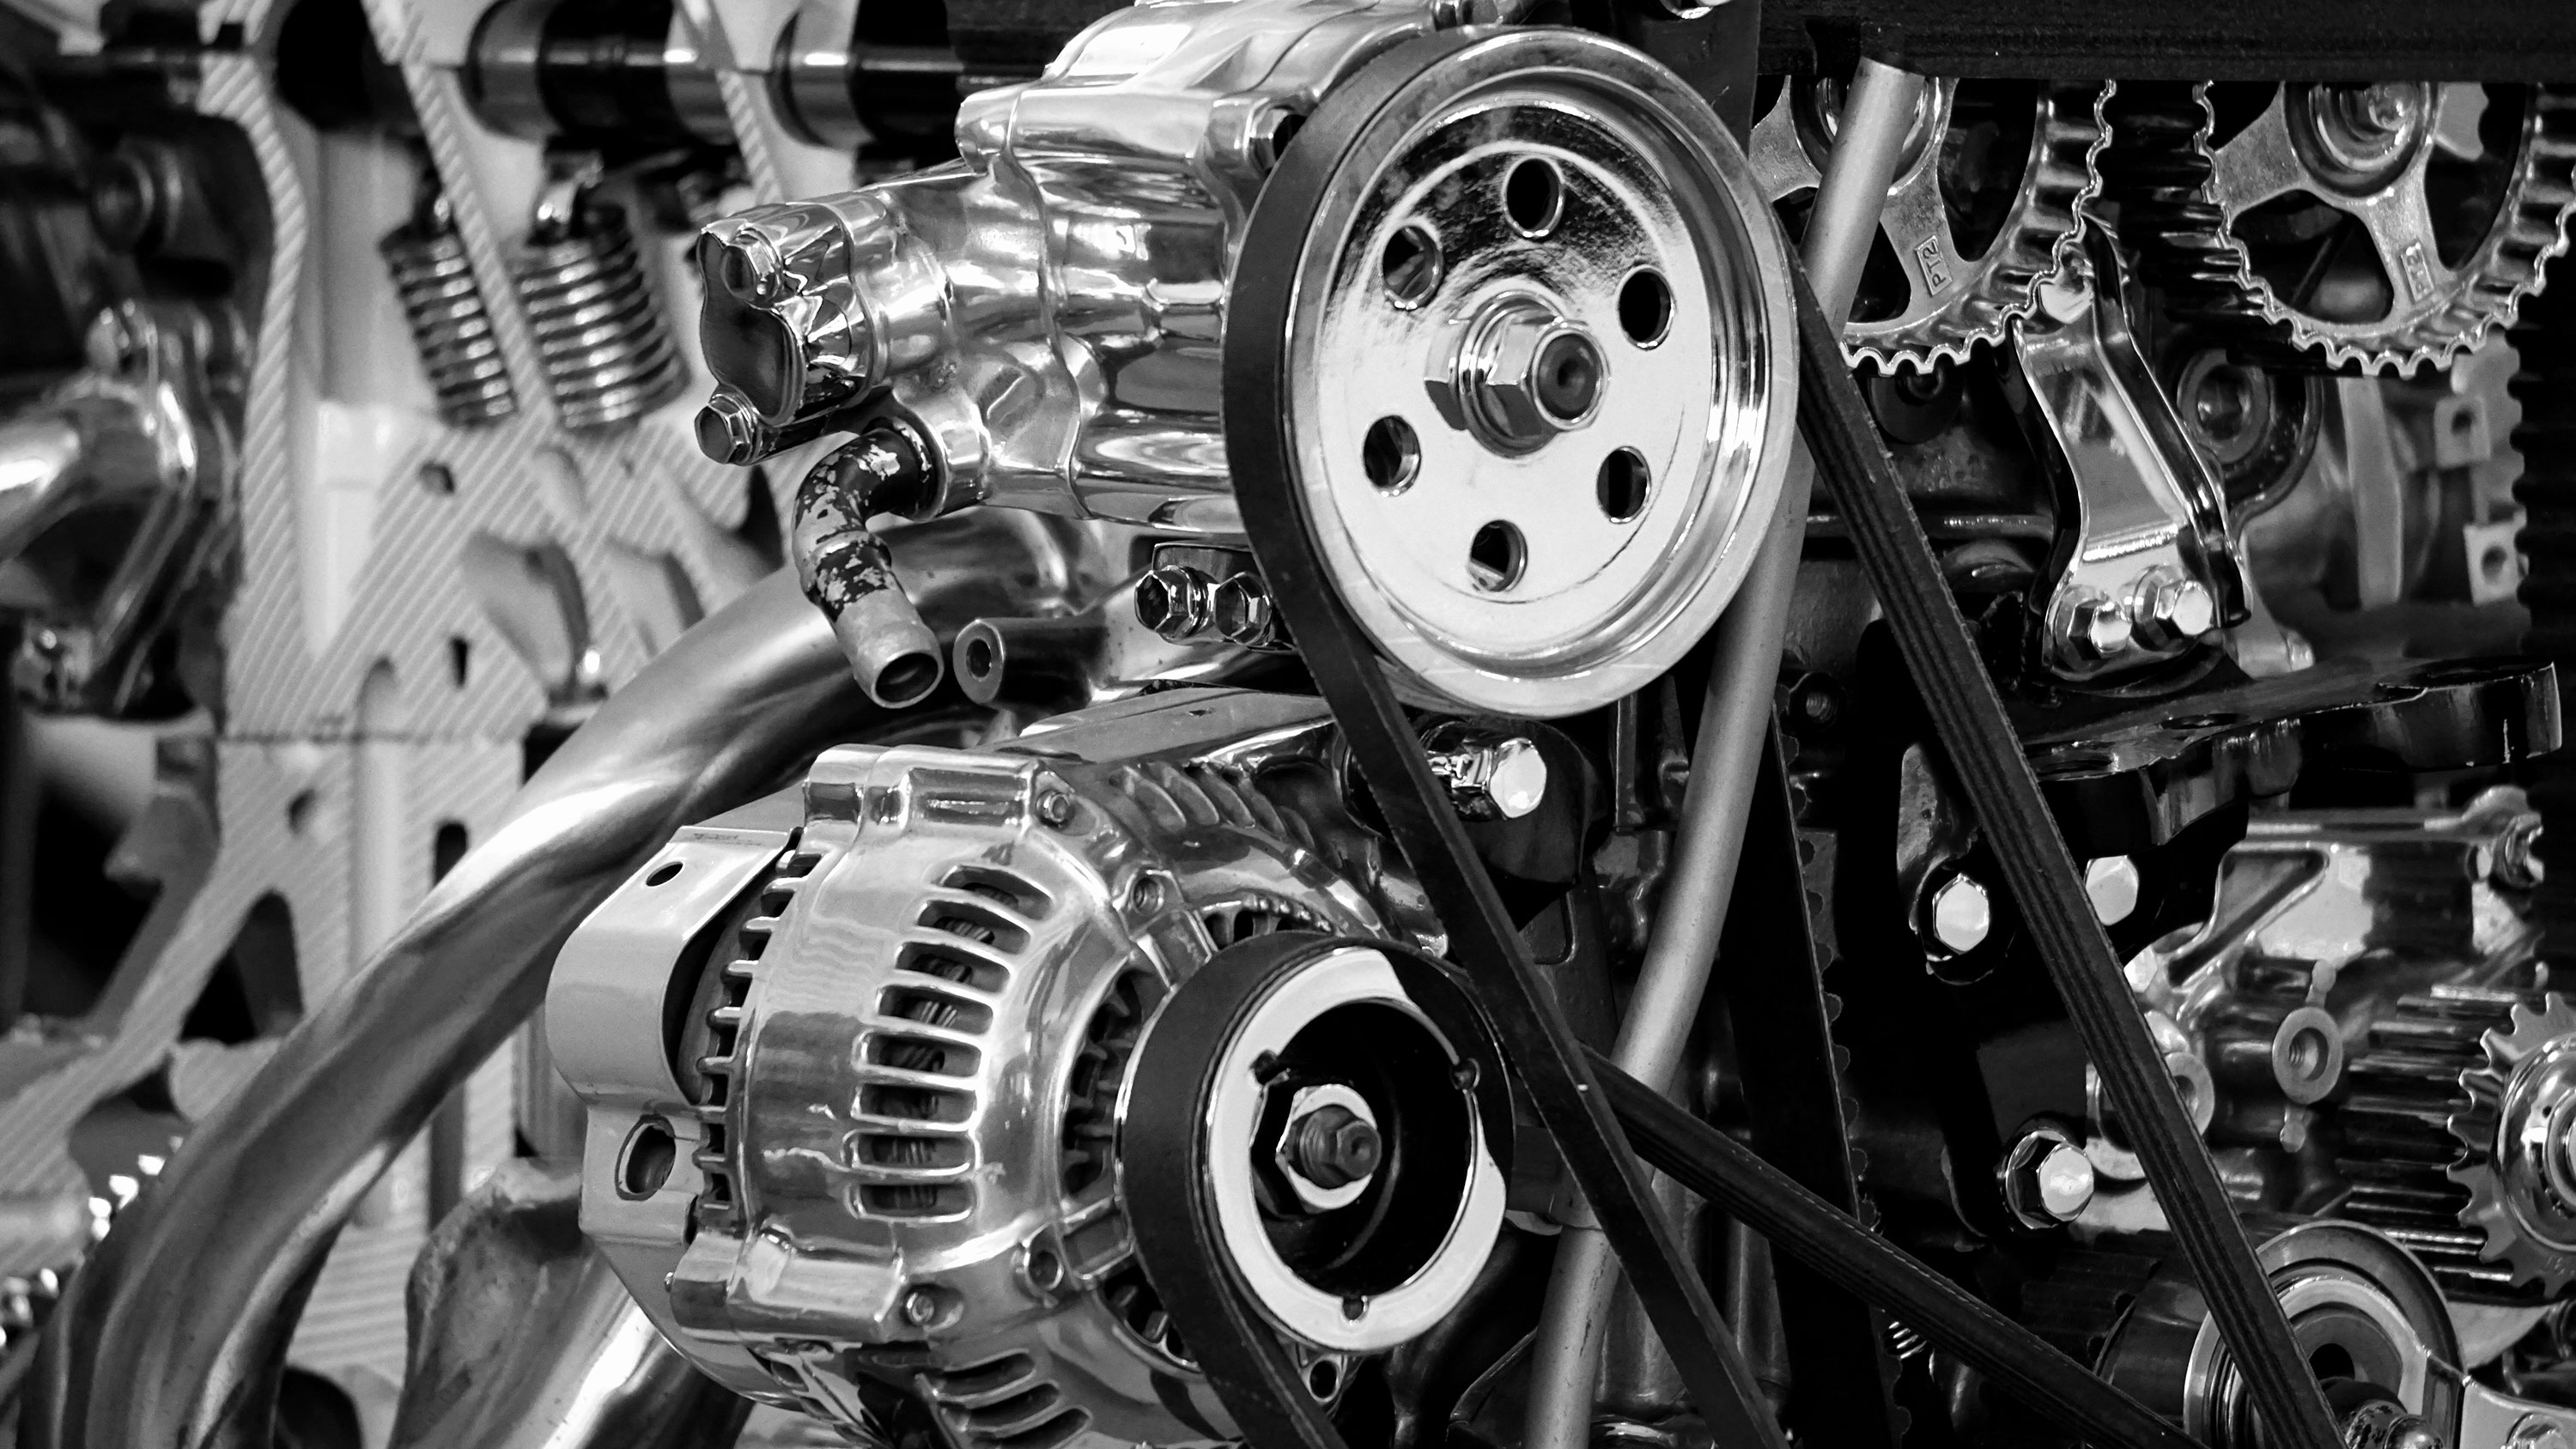 The Squeal of the Serpentine Belt